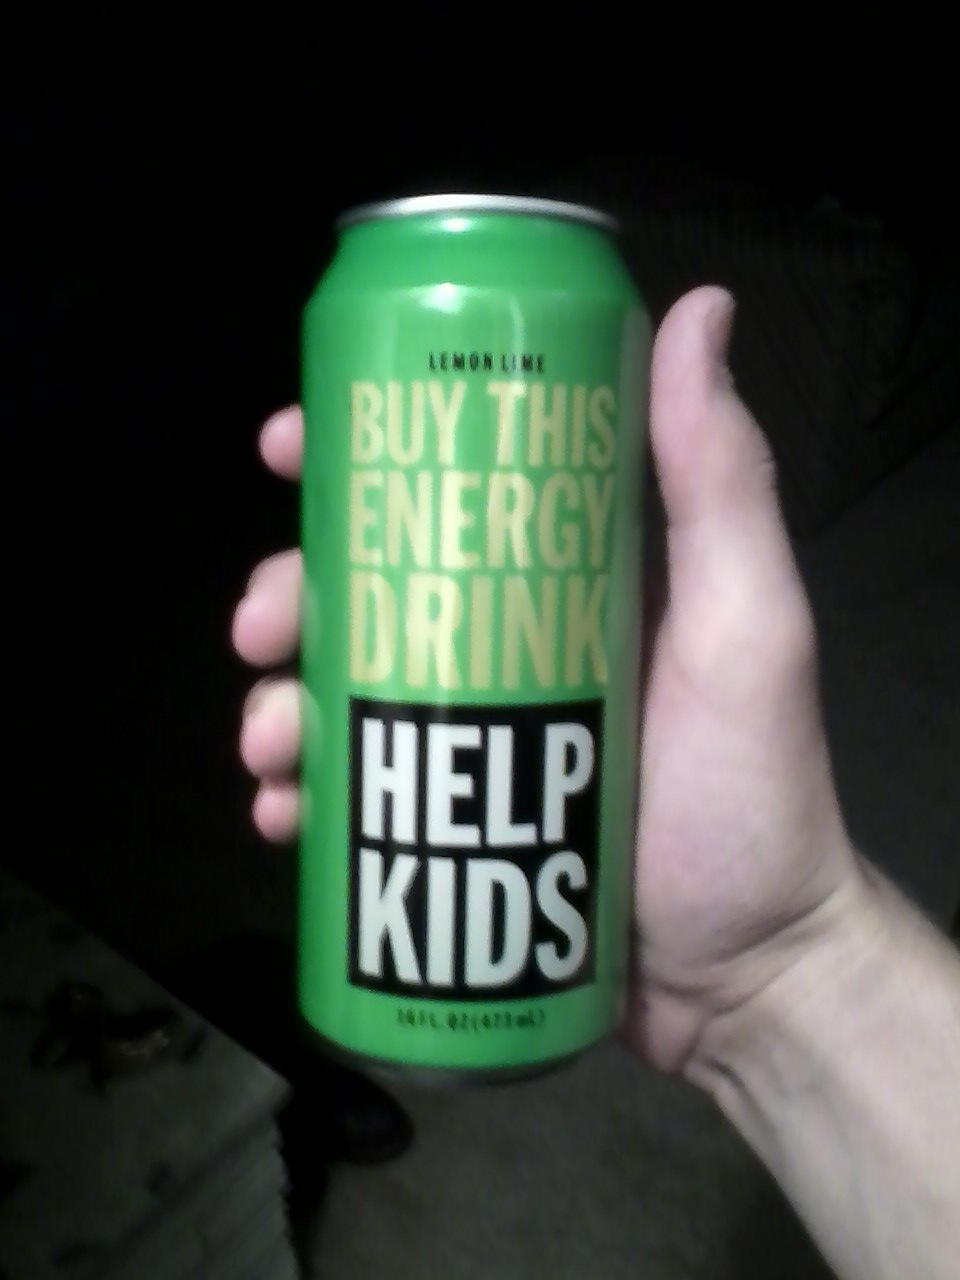 Bad Things About Energy Drink